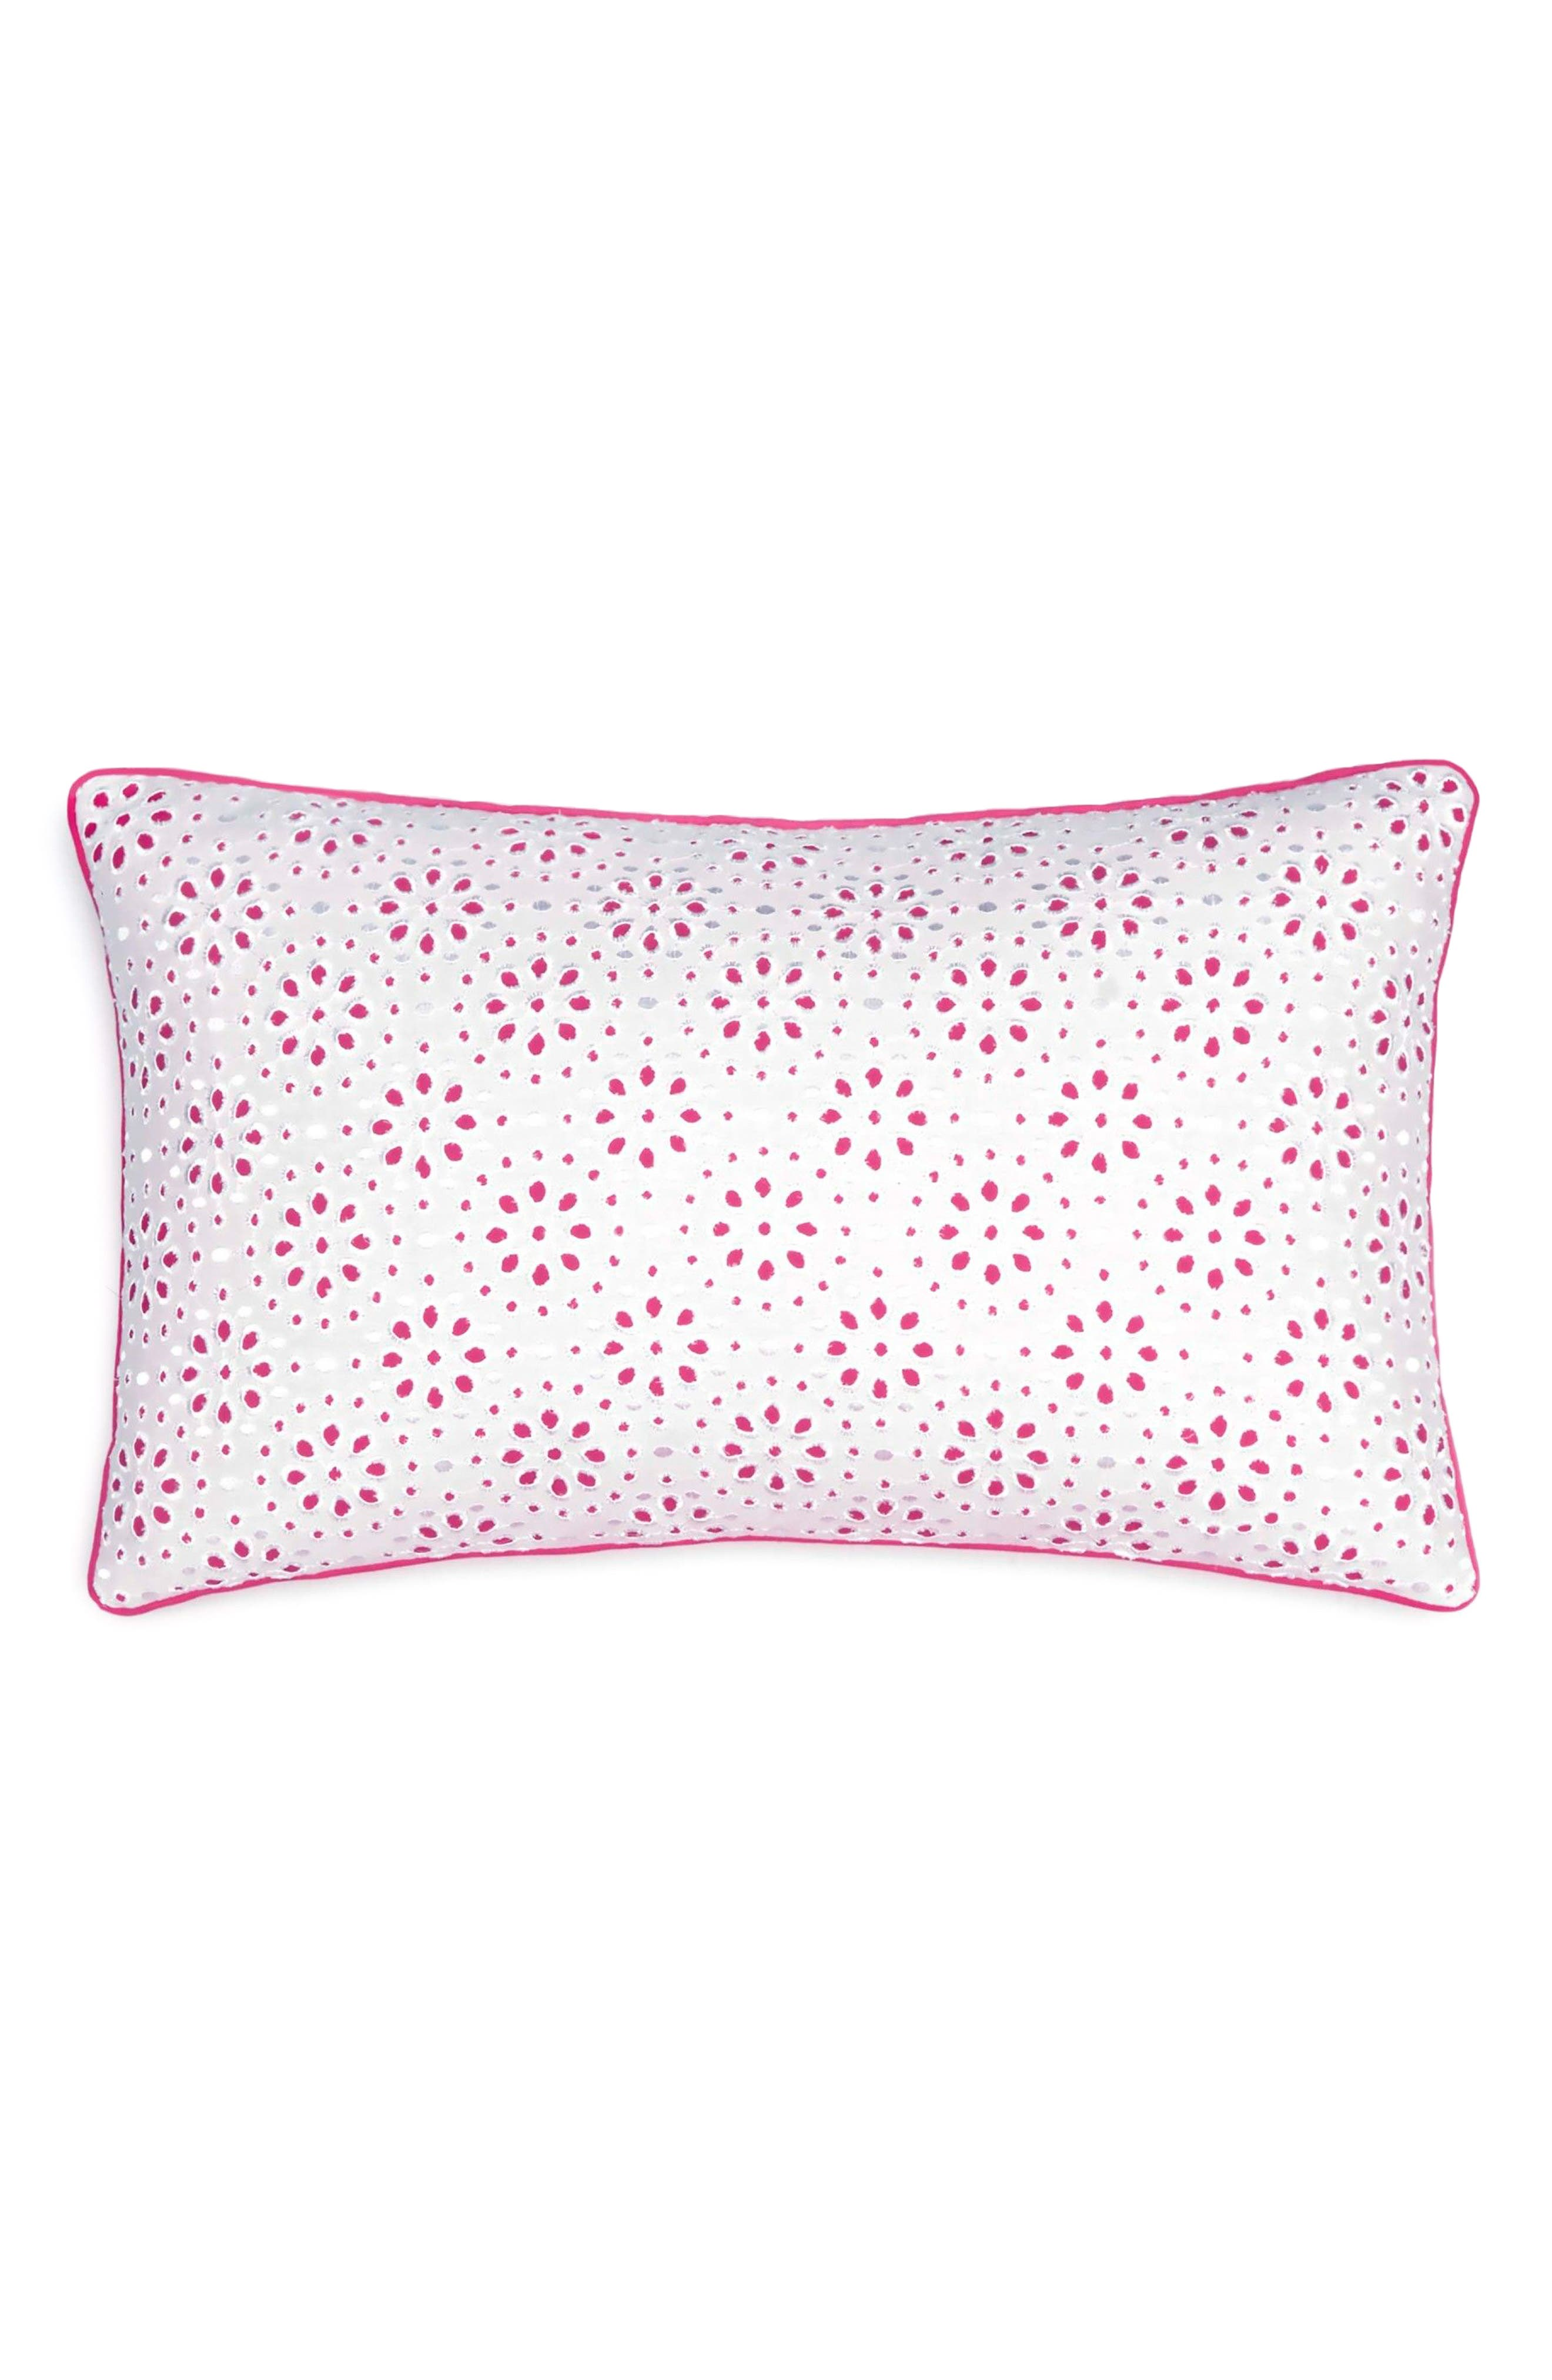 Southern Tide Floral Eyelet Pillow